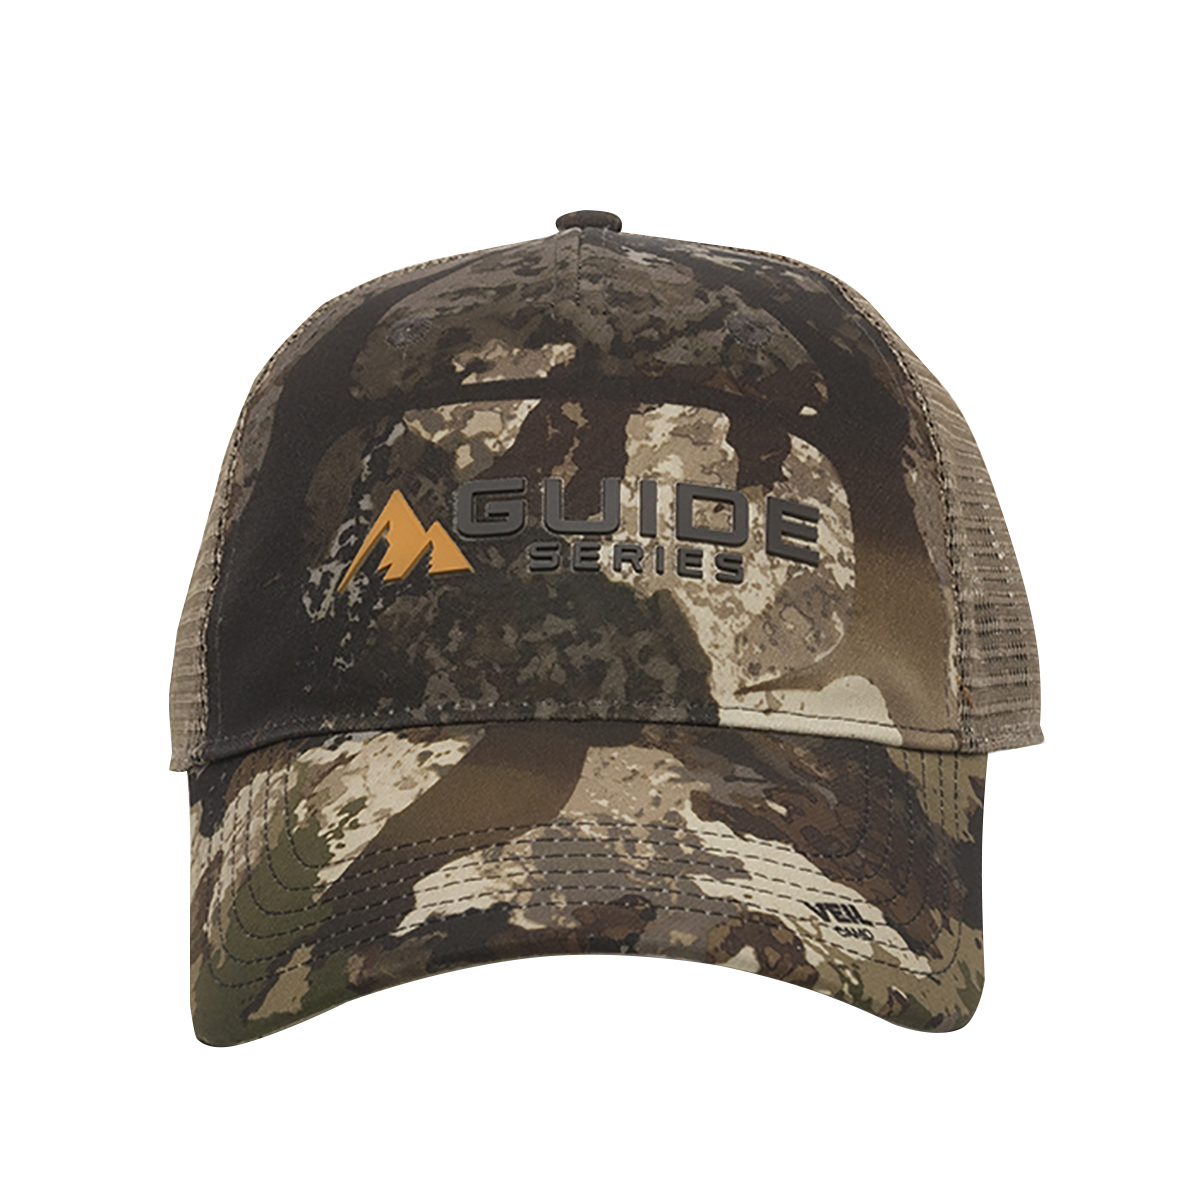 Guide Series Men's Logo 6-Panel Mesh-Back Cap, Veil Stoke Camo